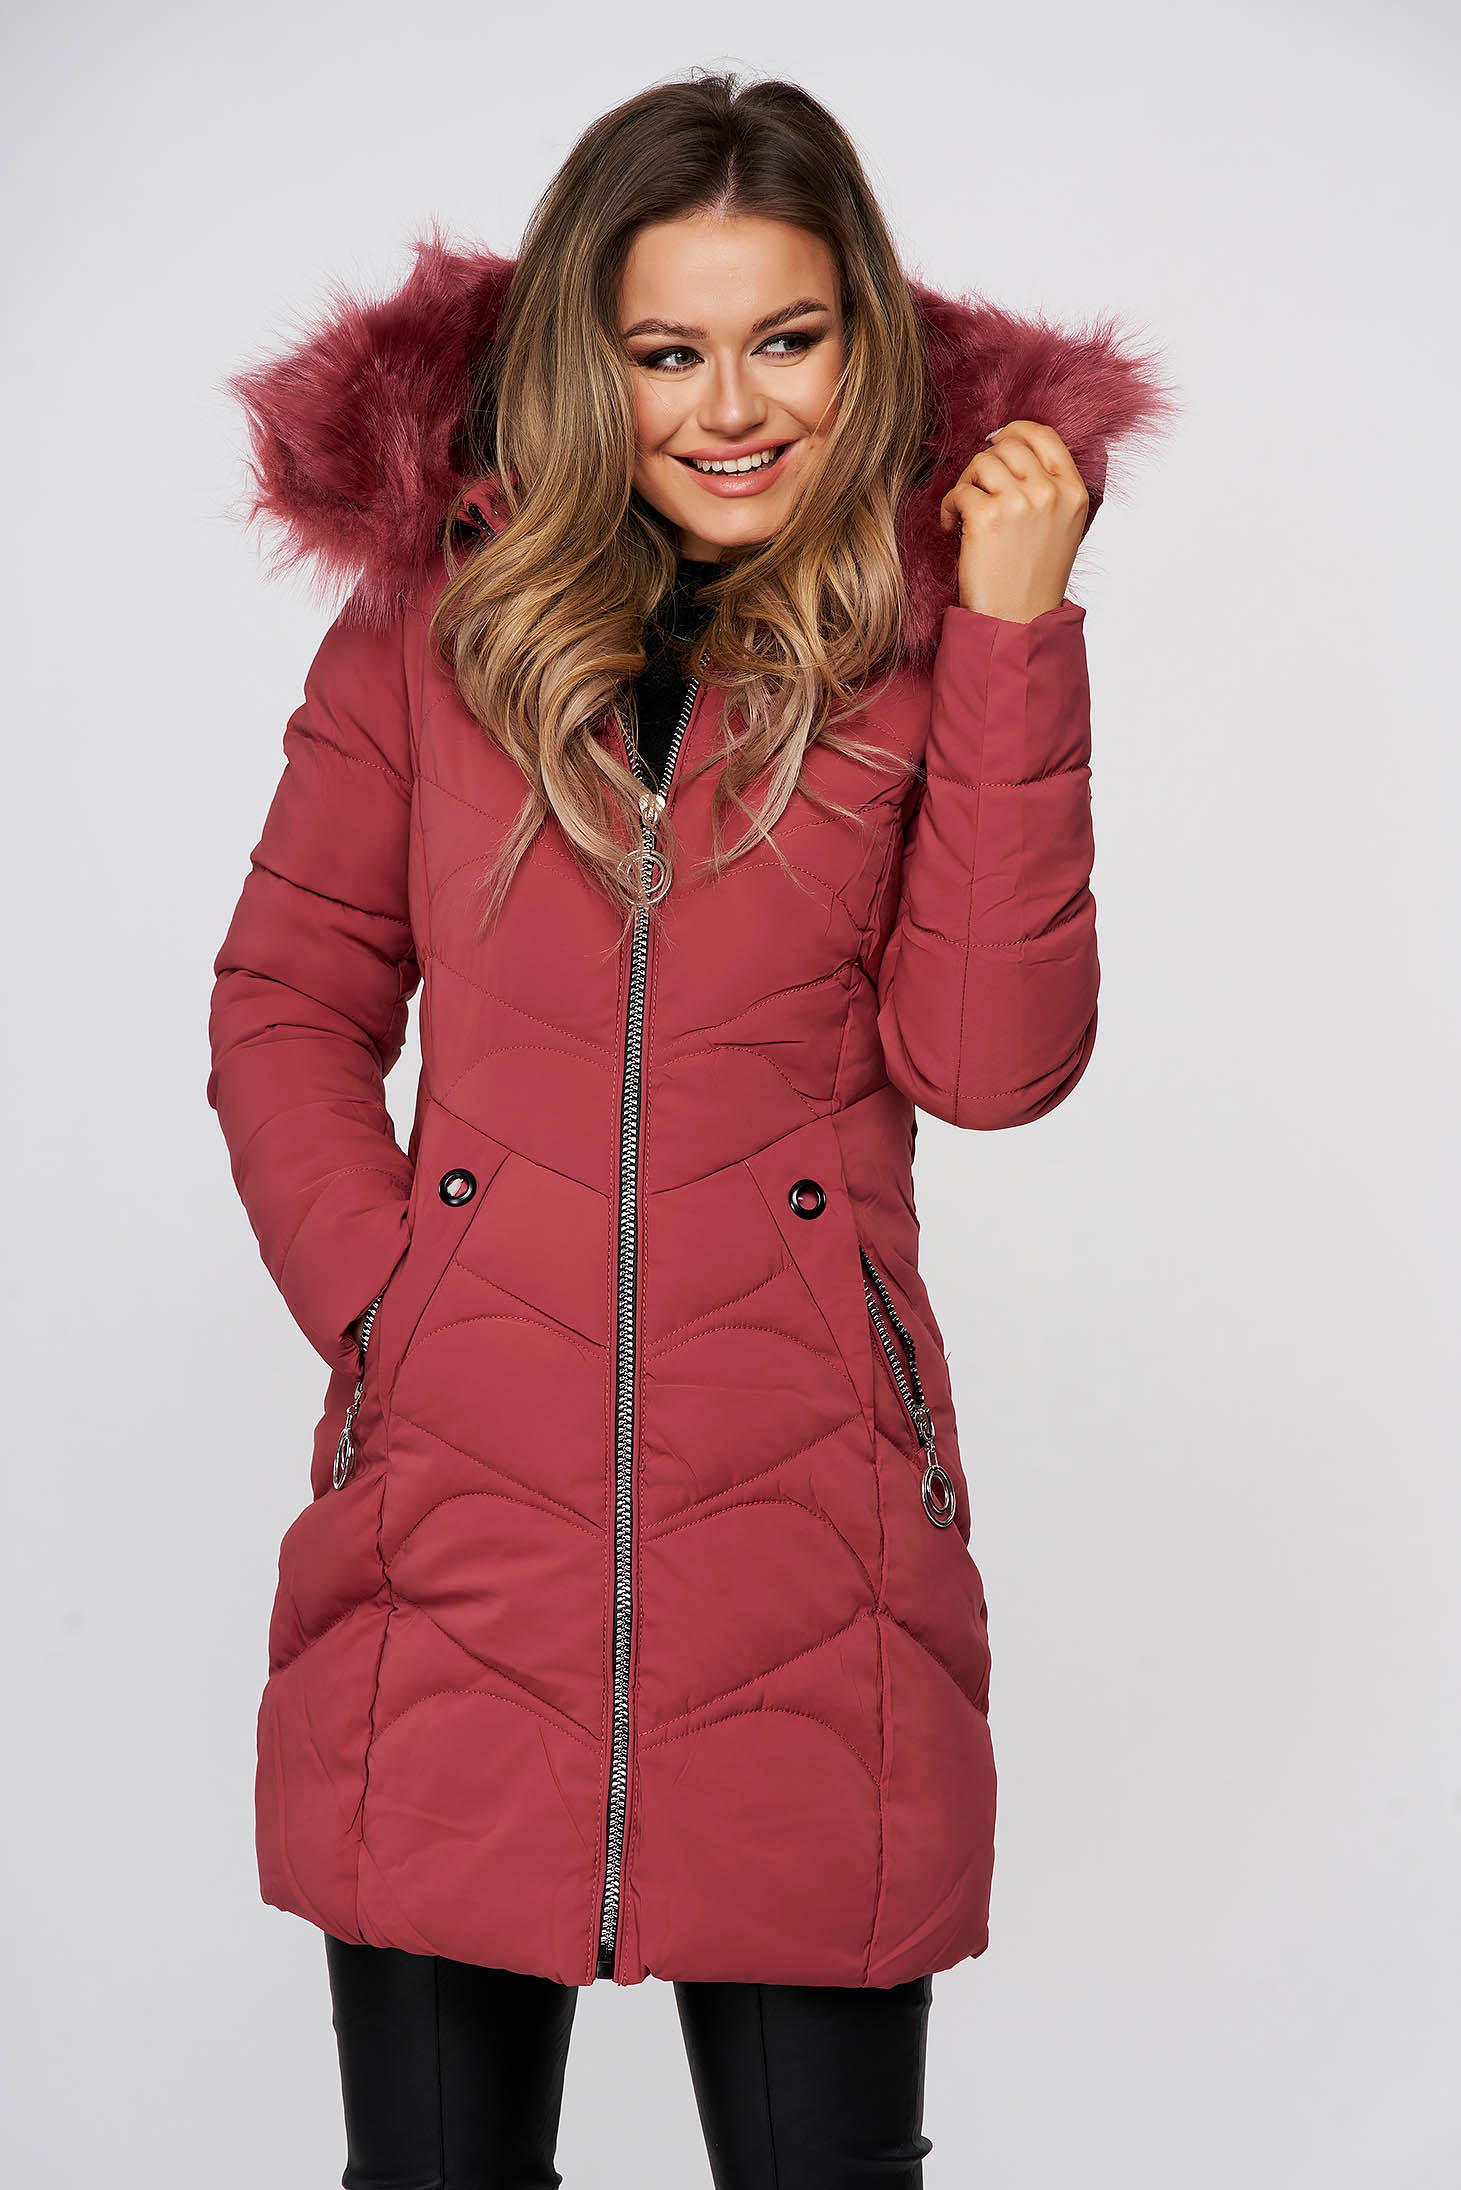 Coral jacket midi from slicker with faux fur lining detachable hood